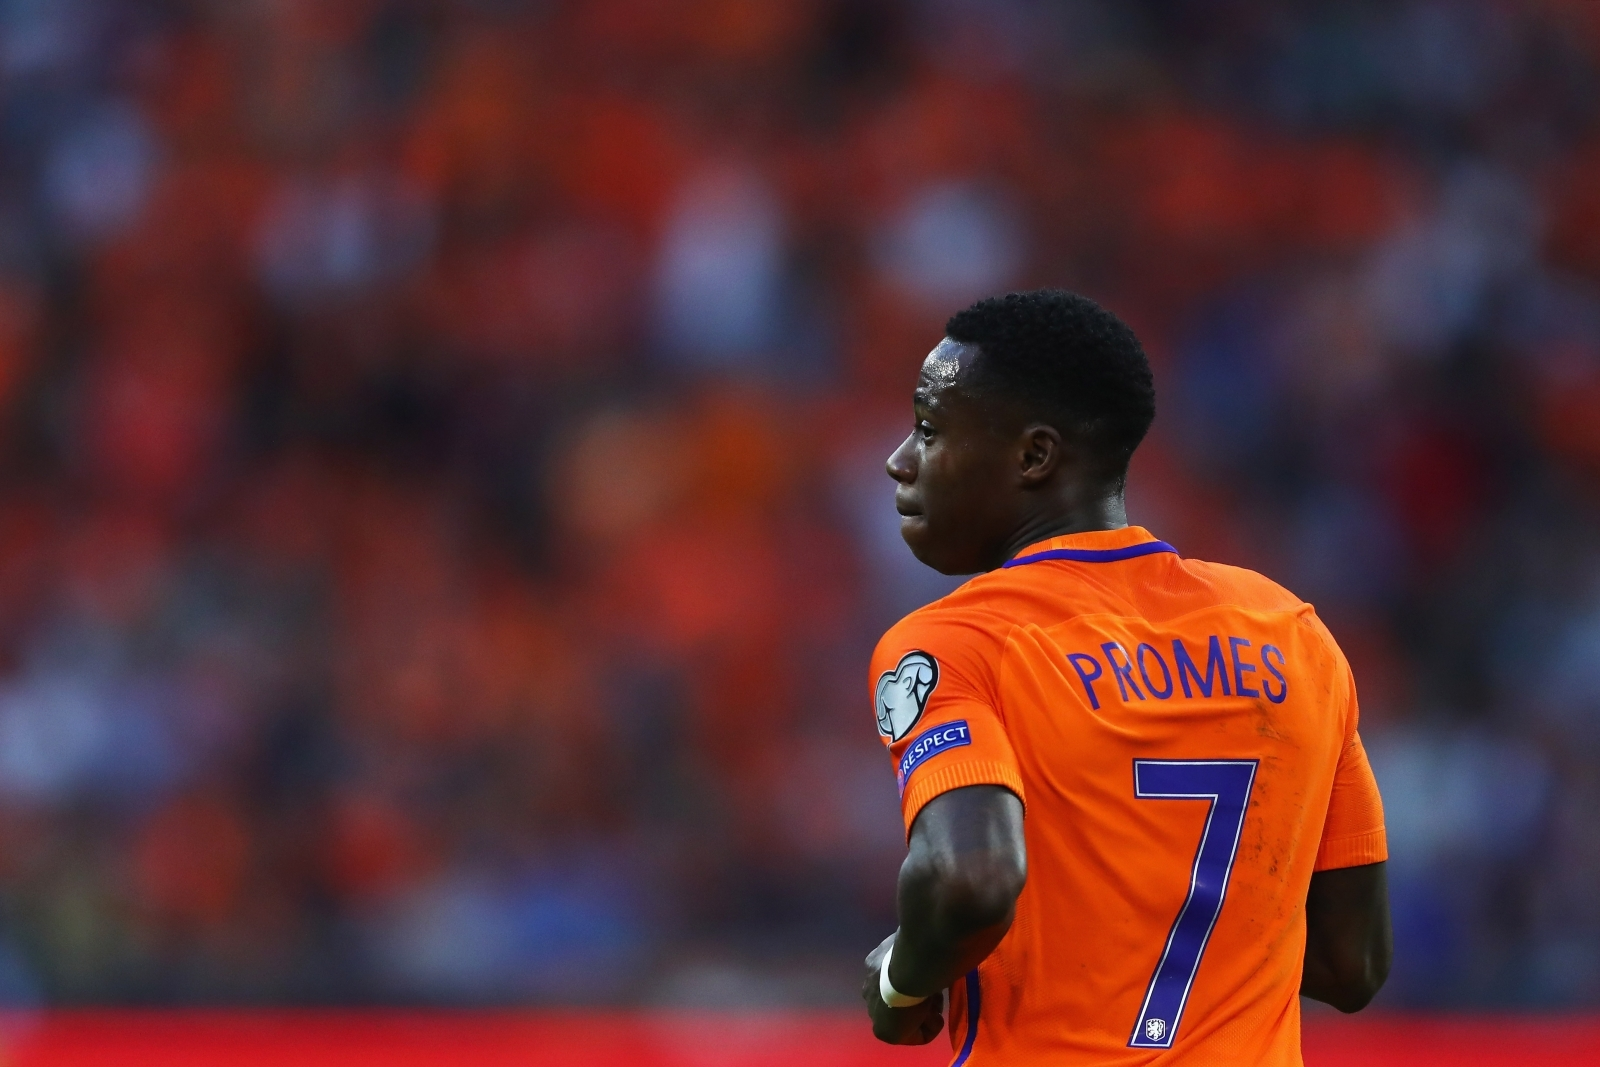 Moscow Quincy doubtful Promes for Spartak vs  Liverpool